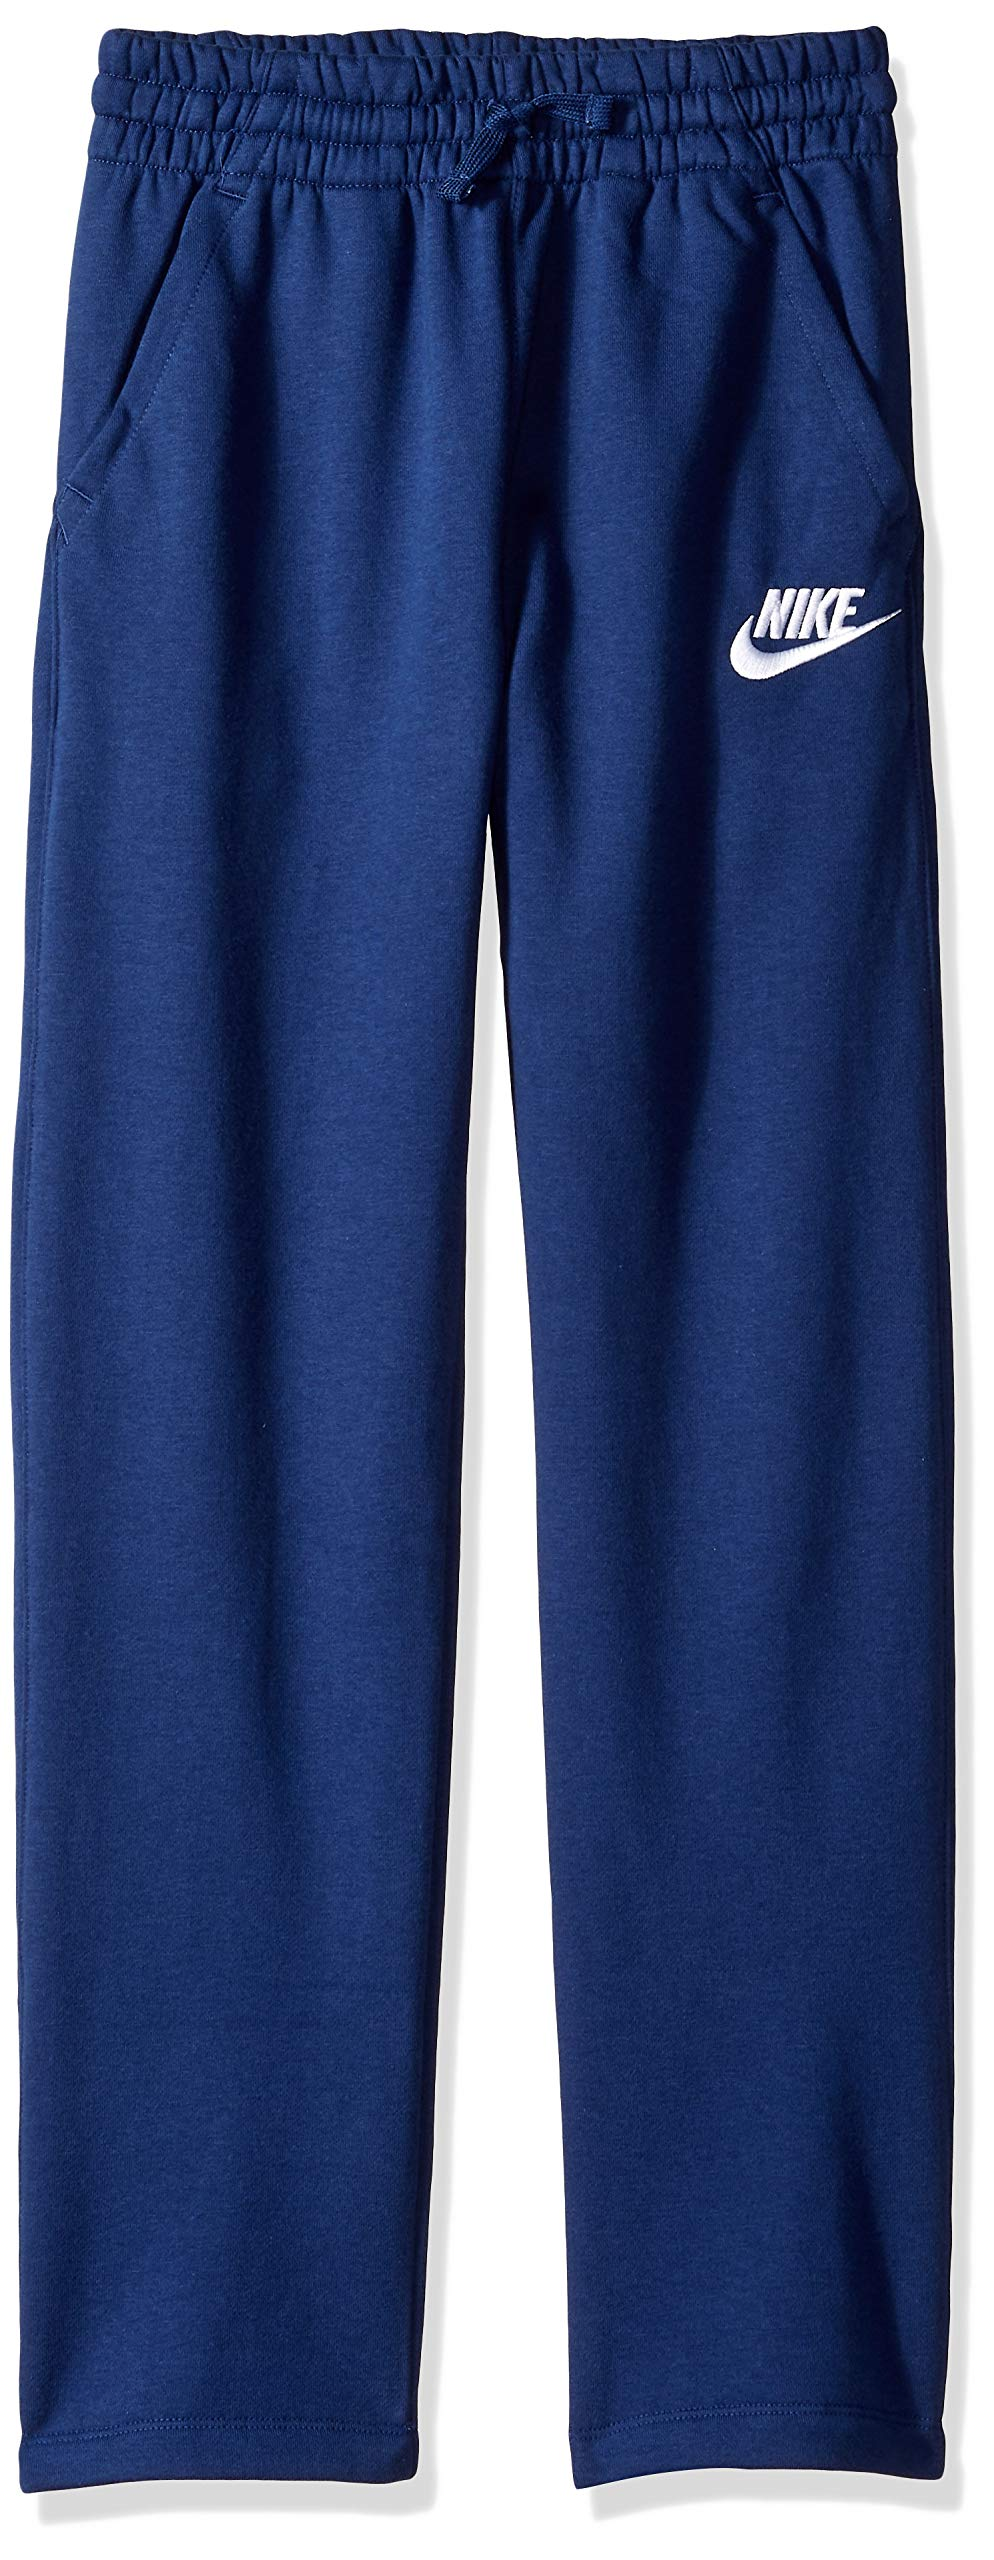 Nike Boys Sweatpants (NAVY, LARGE) by Nike